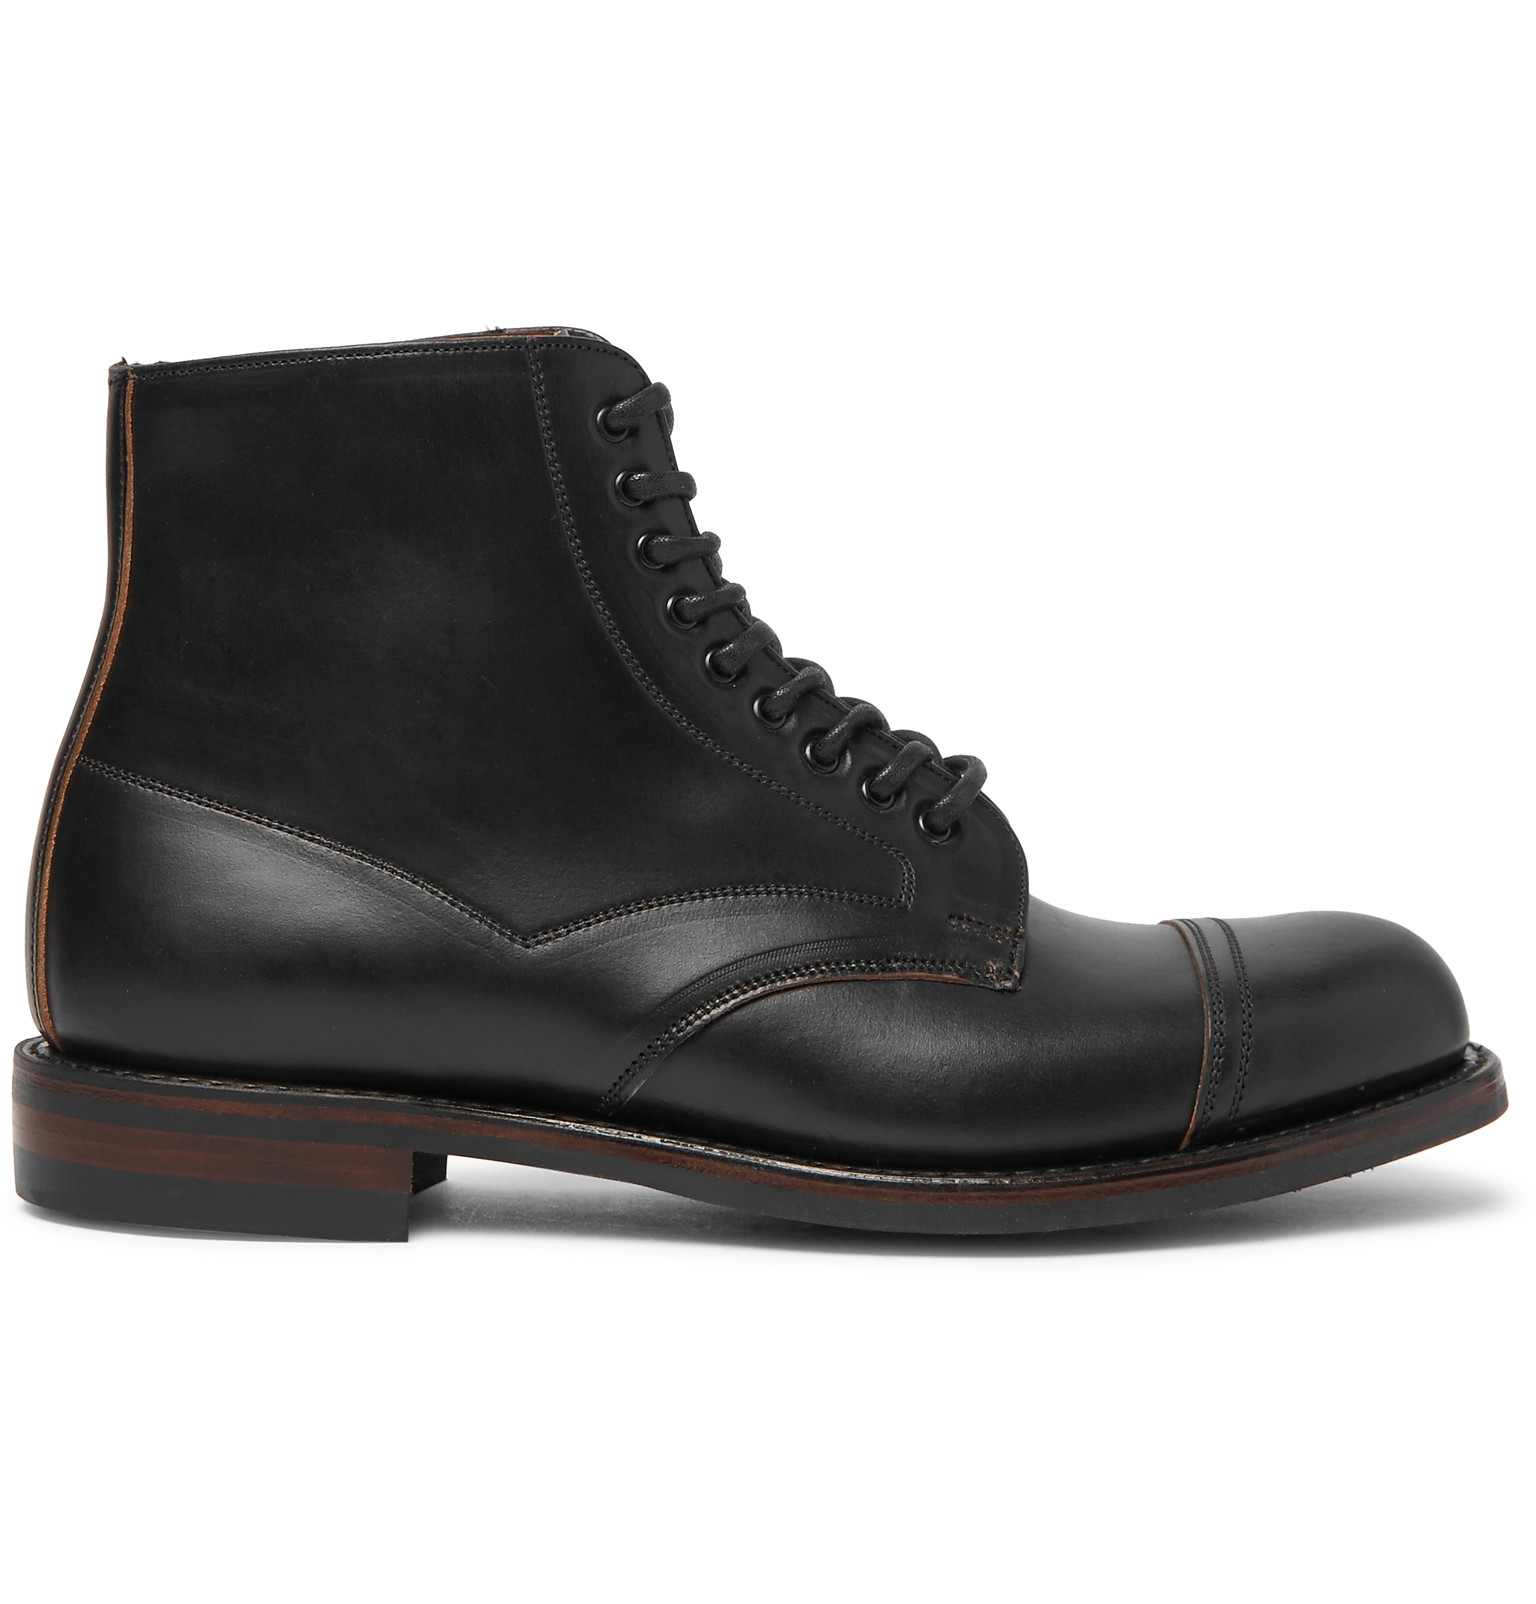 Cheaney Jarrow Toe Boots Leather Cap UxUOr